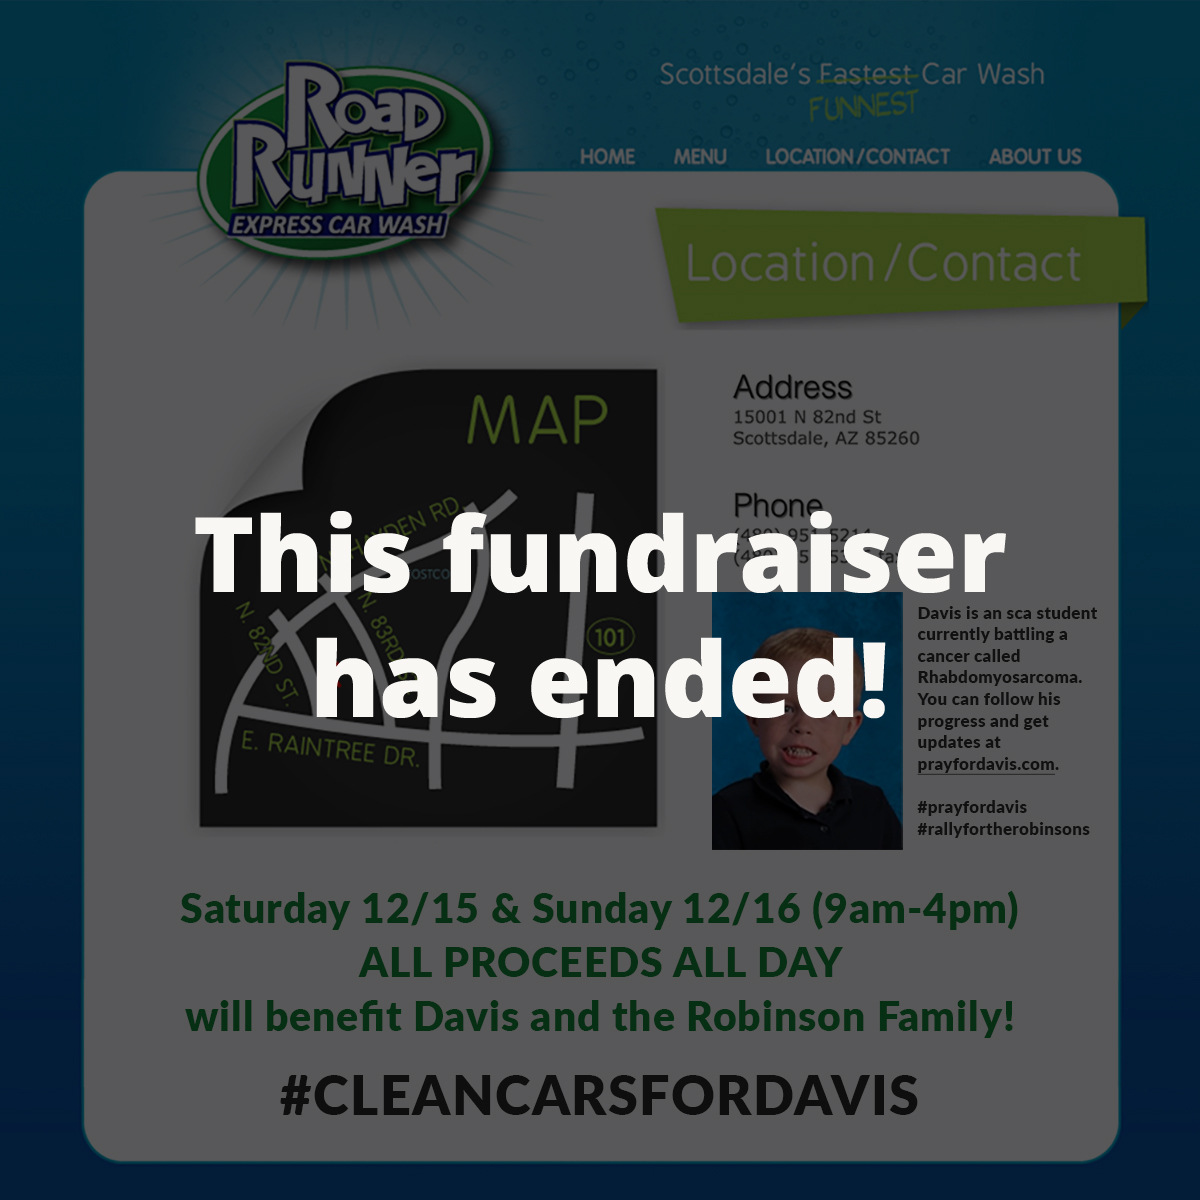 Road Runner Express Car Wash - ALL PROCEEDS ALL DAY on Saturday 12/15 & Sunday 12/16 are being donated to the Robinson Family! Thank you, Anderson family!